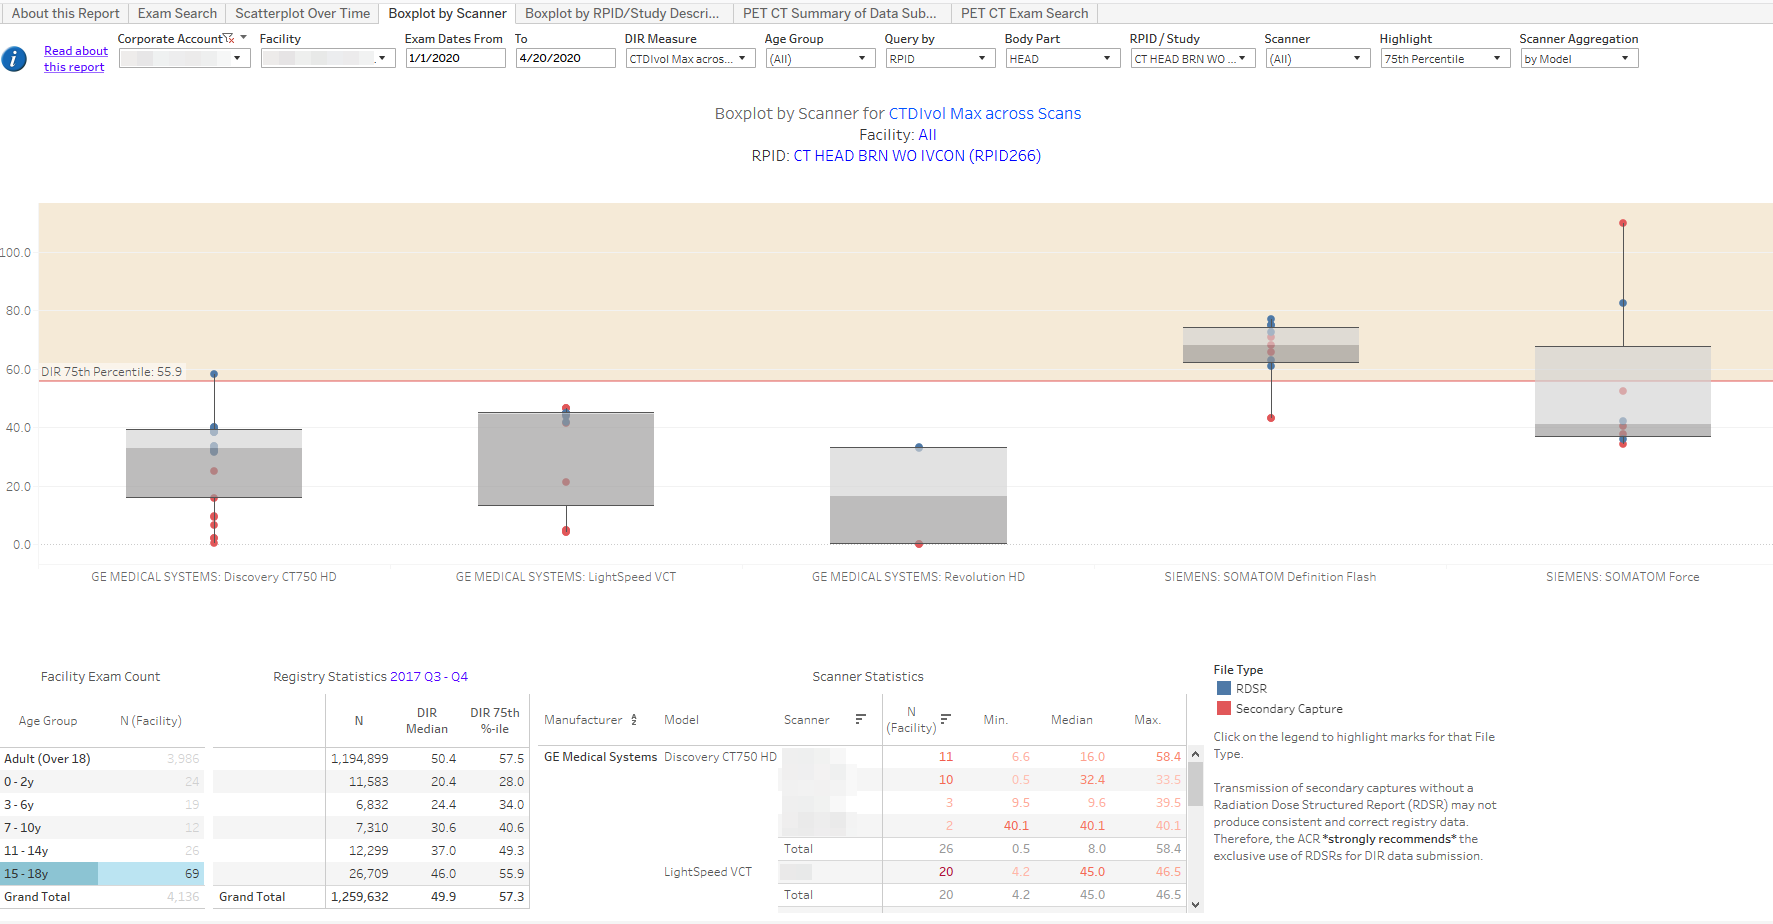 DIR Interactive Reports - Sample Boxplot by Scanner 3